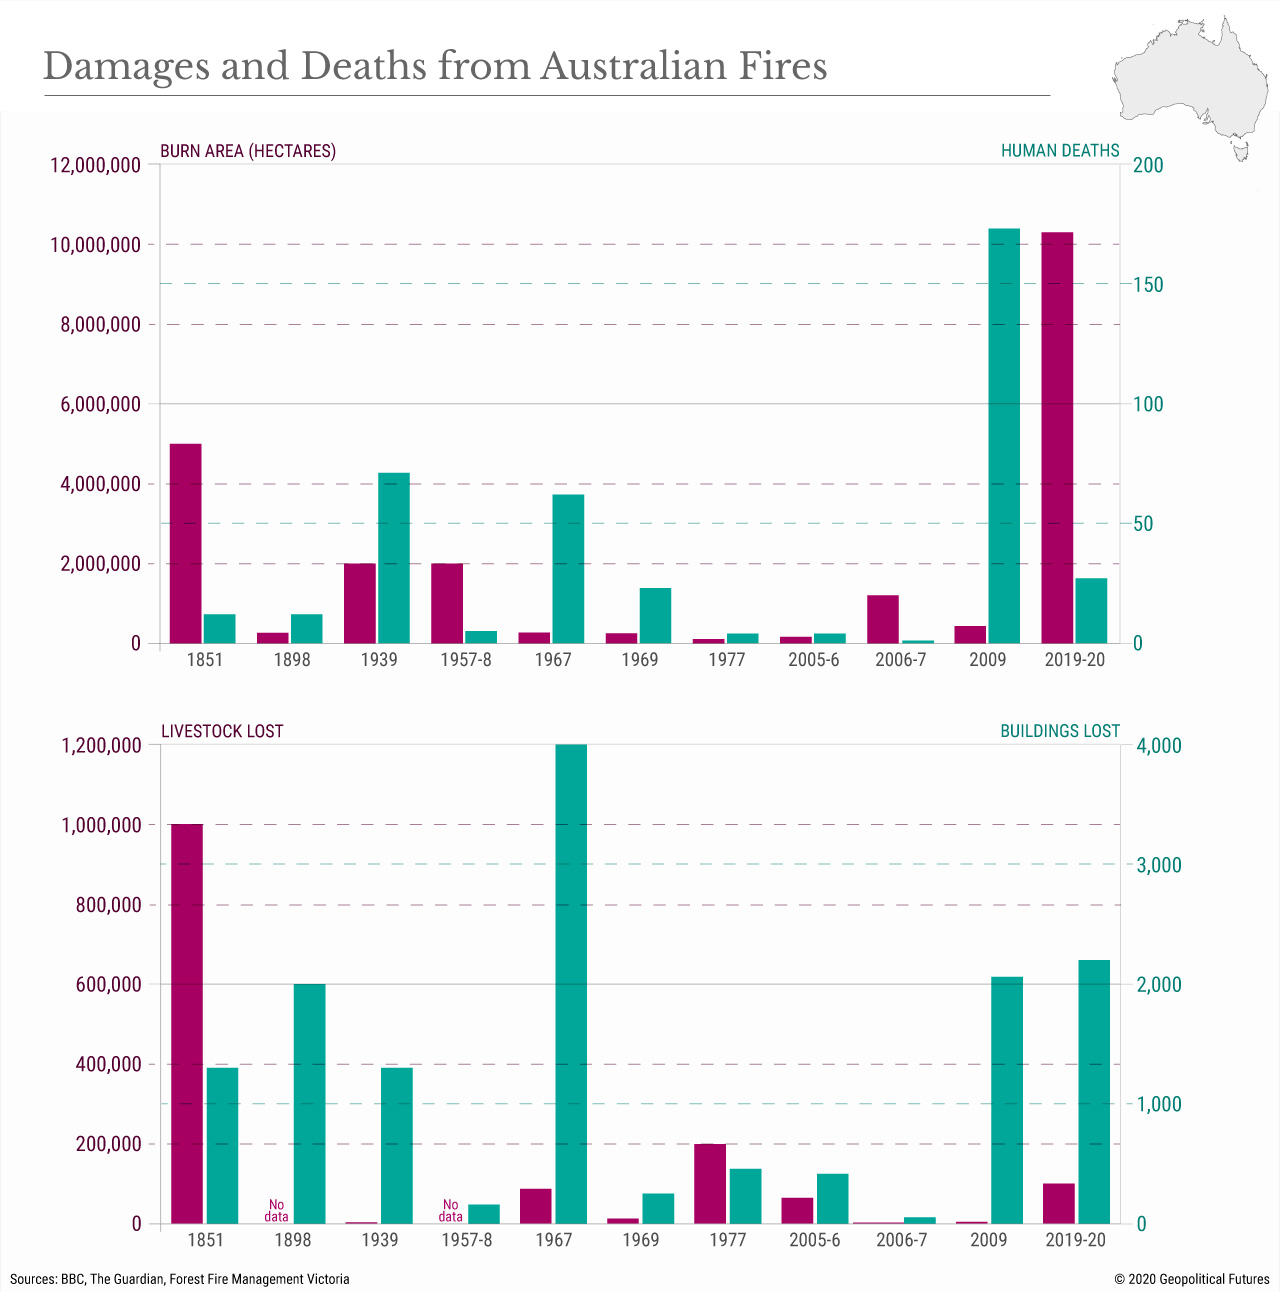 Damages and Deaths from Australian Fires